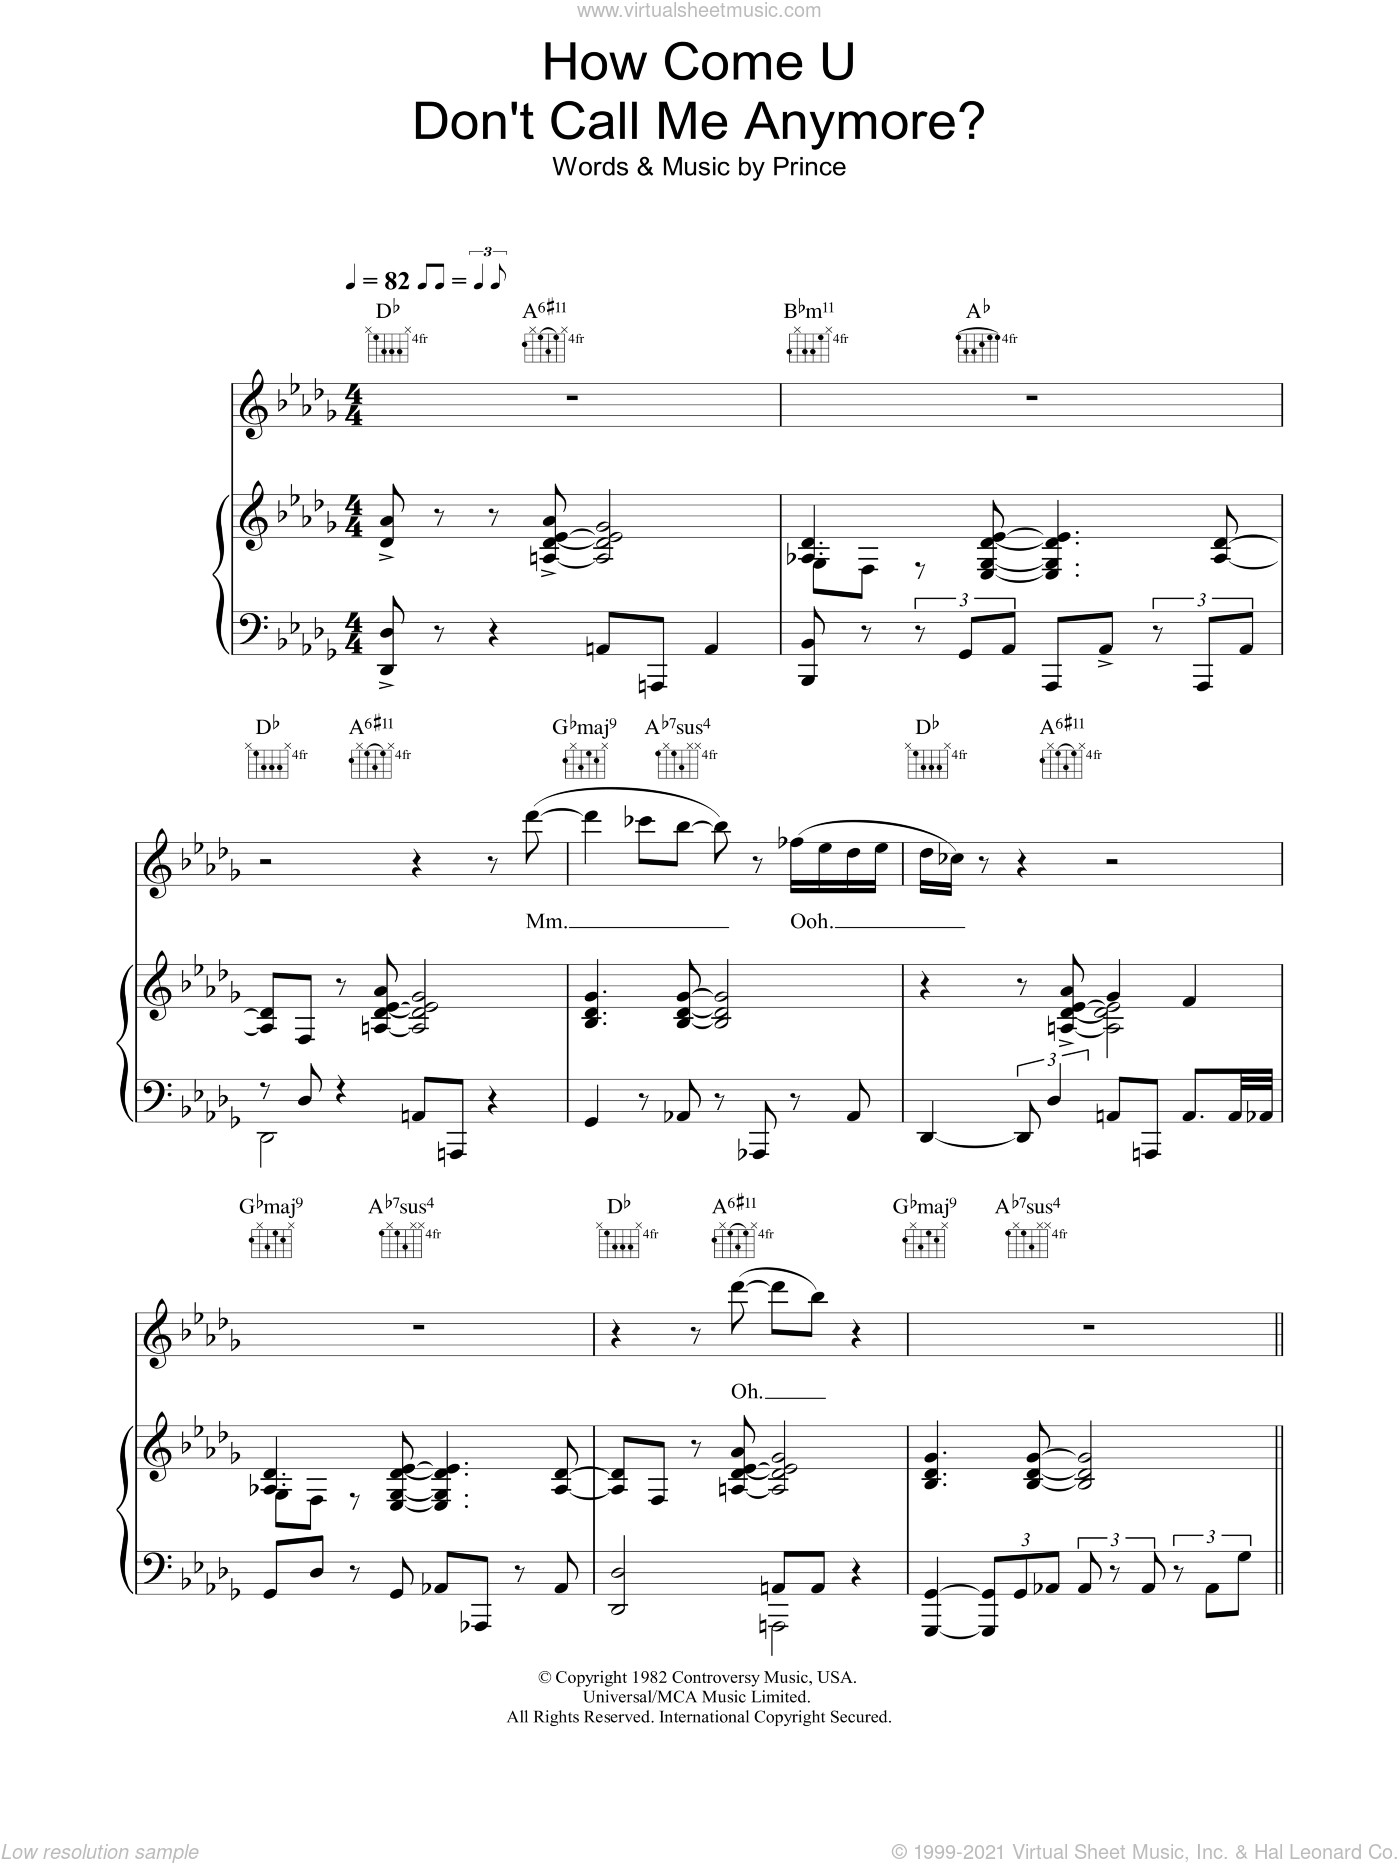 How Come U Don't Call Me Anymore sheet music for voice, piano or guitar by Prince. Score Image Preview.